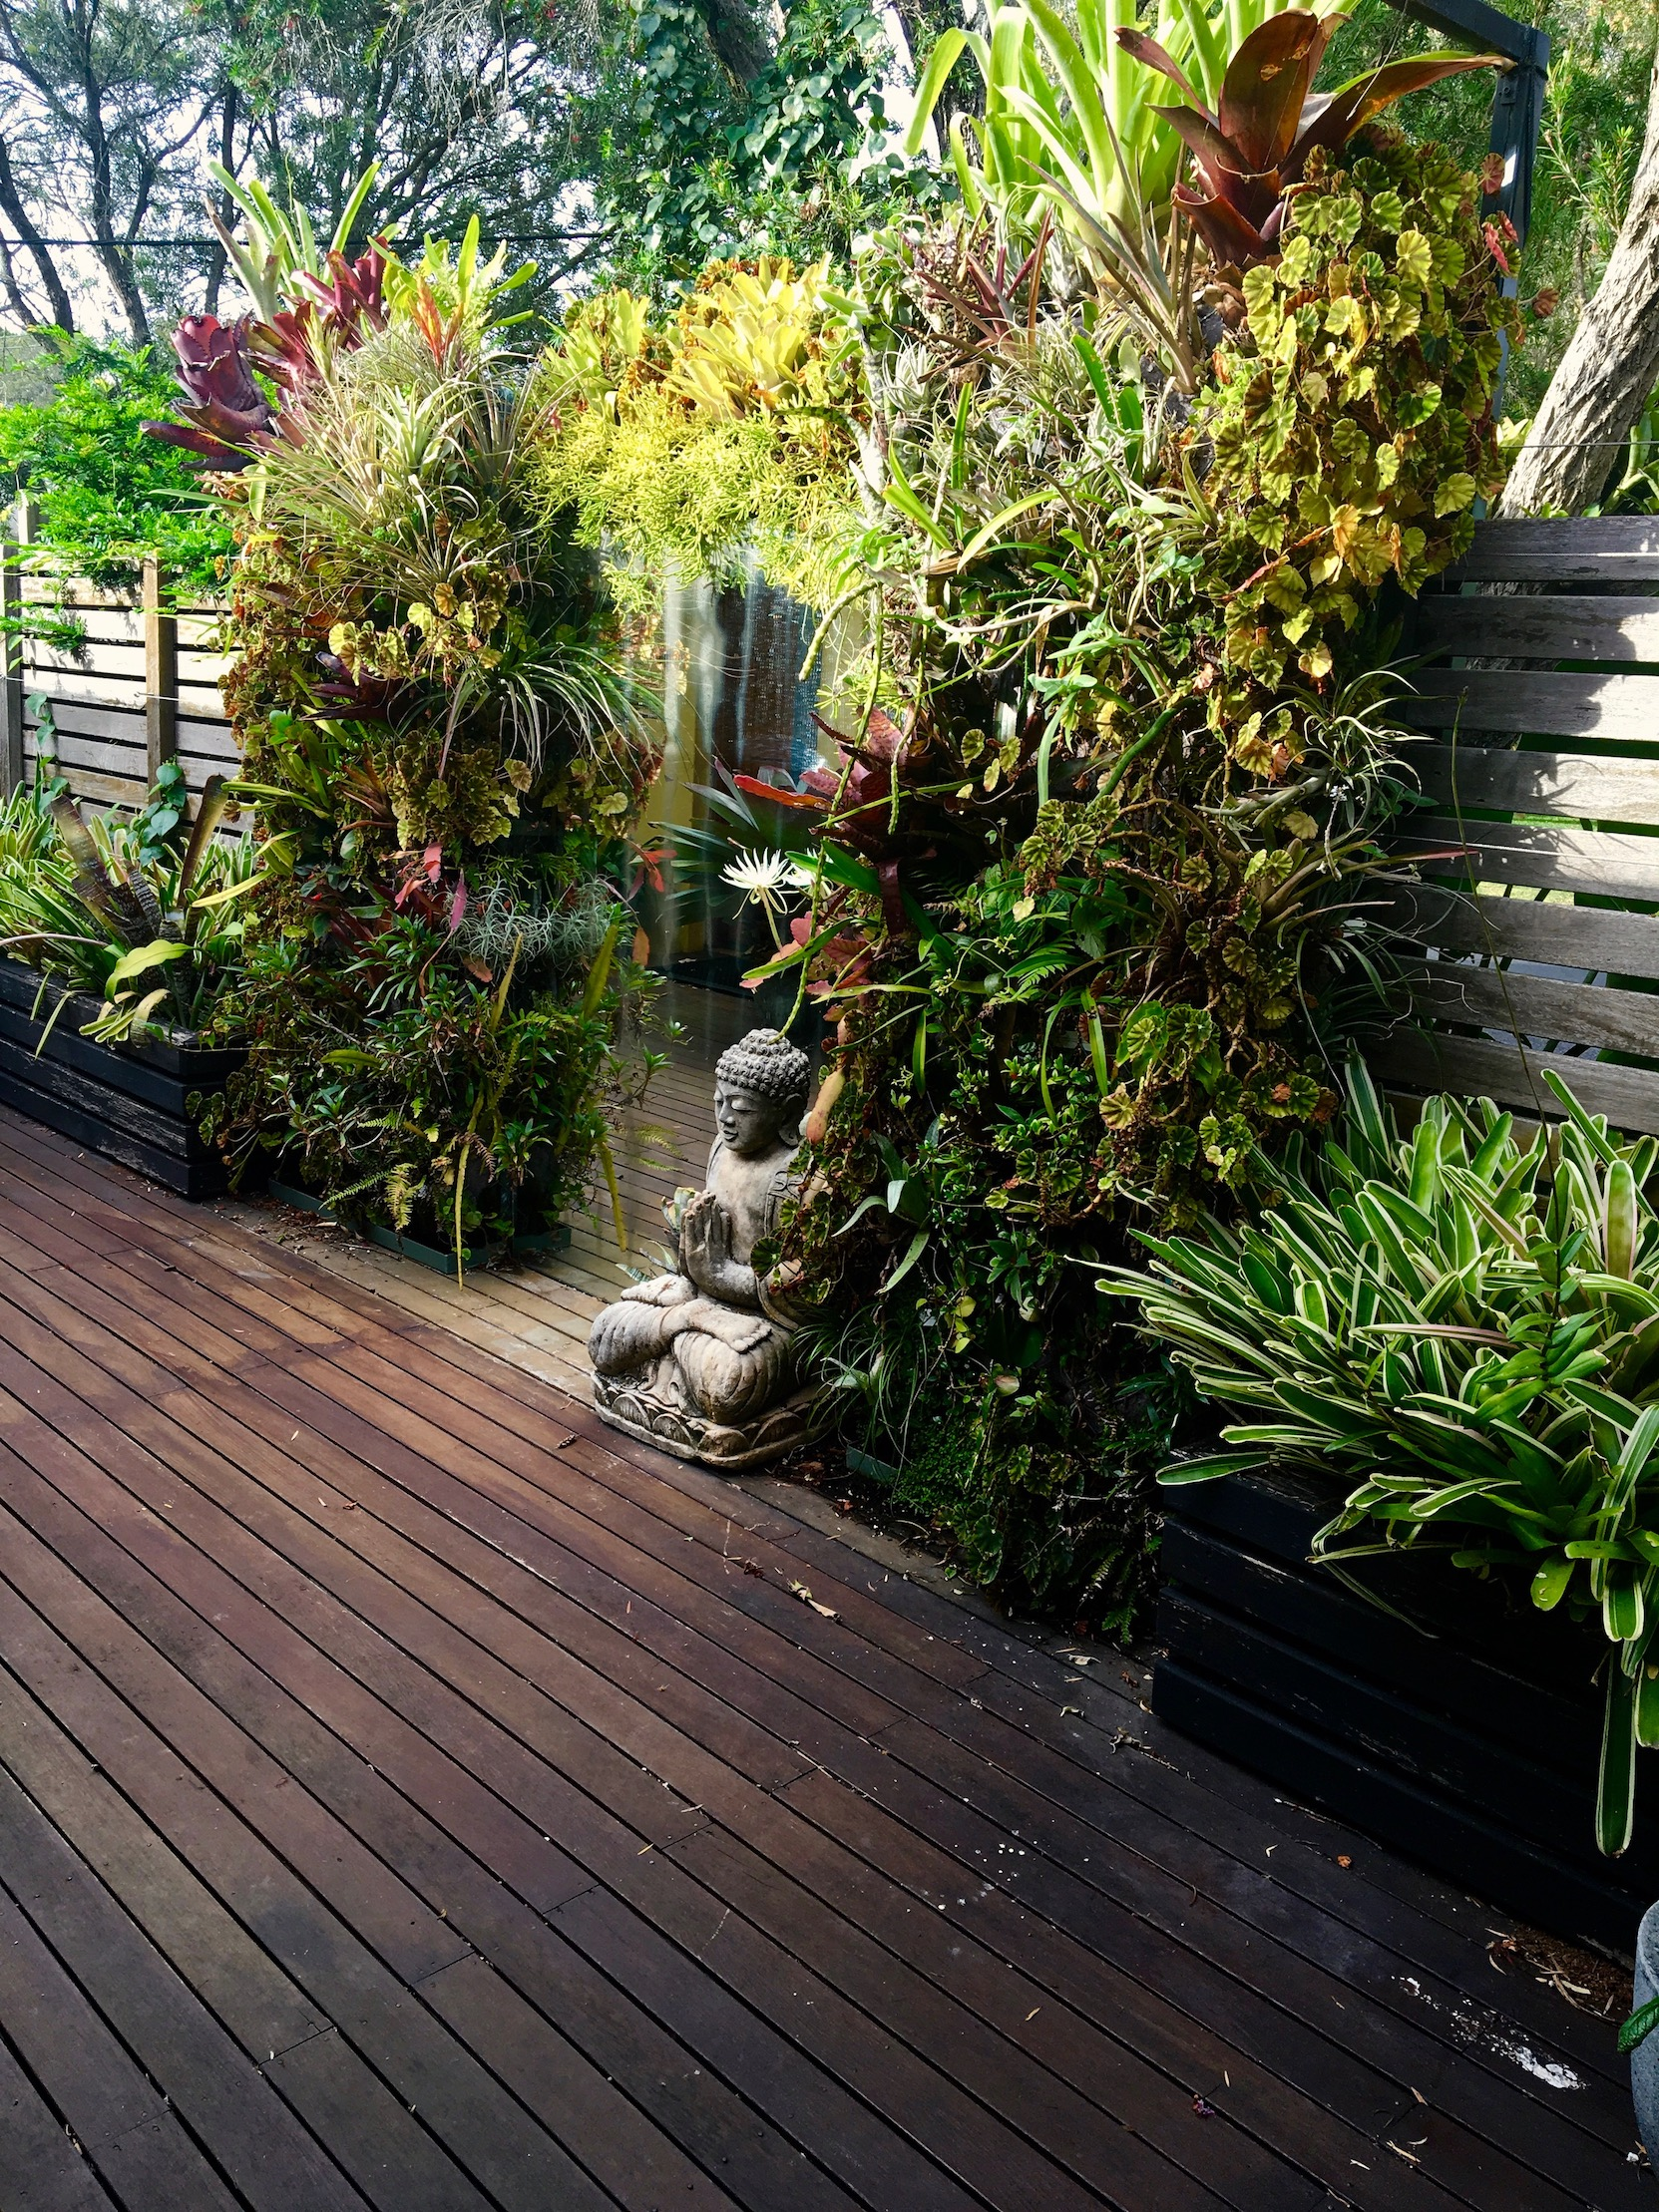 'Sea-Changer' Mirror Deck with epiphyte loaded greenwalls